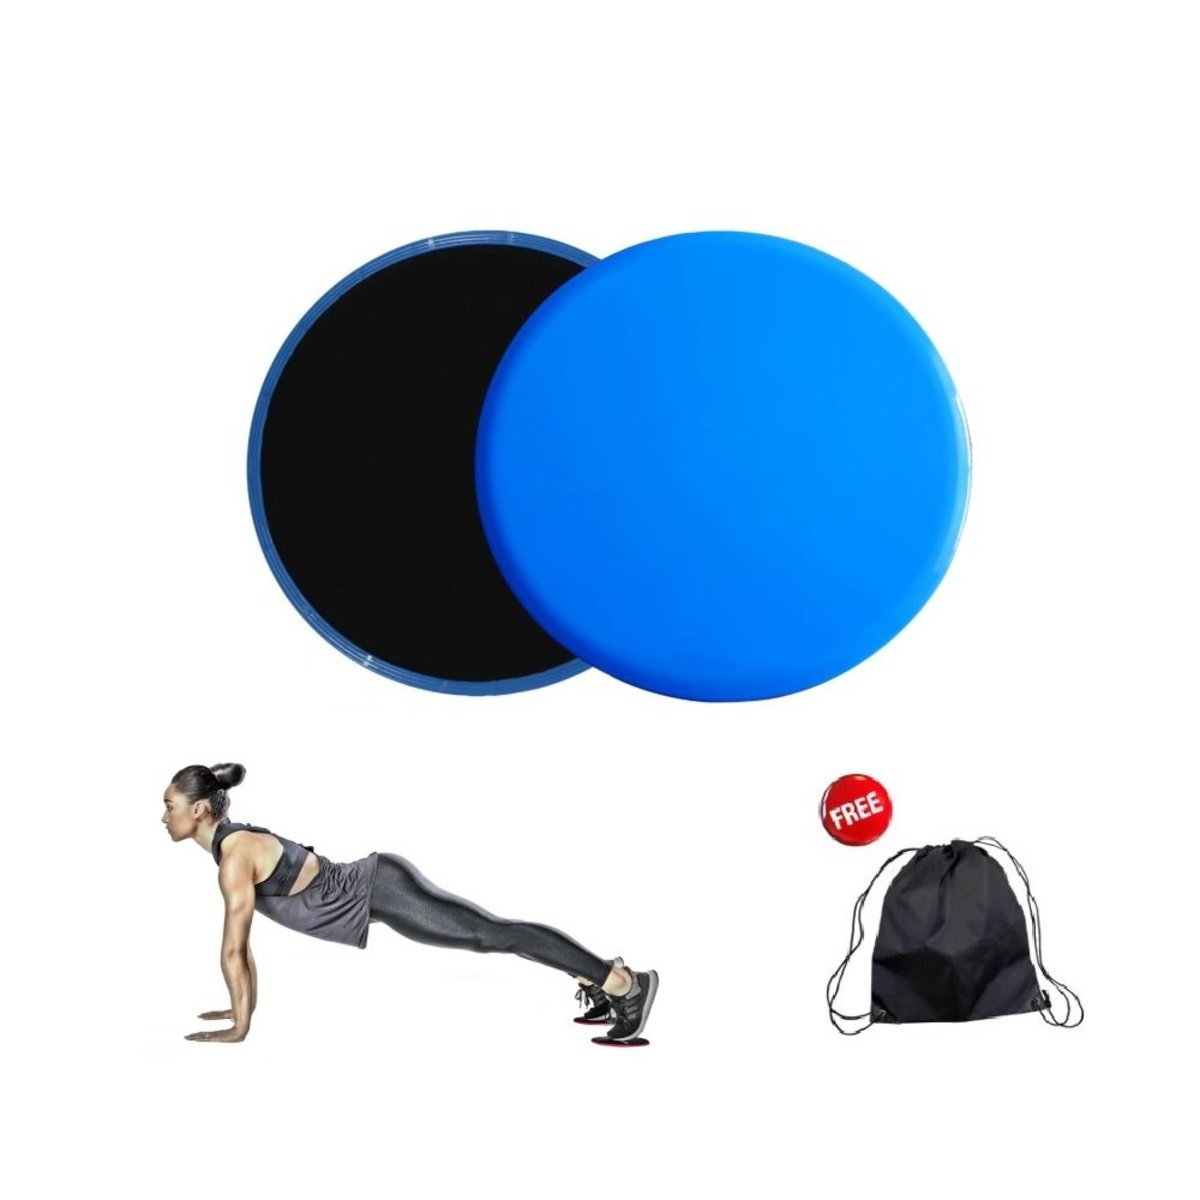 Kzhouse 2 Exercise Sliders Fitness Workout Sliders Gliding Discs